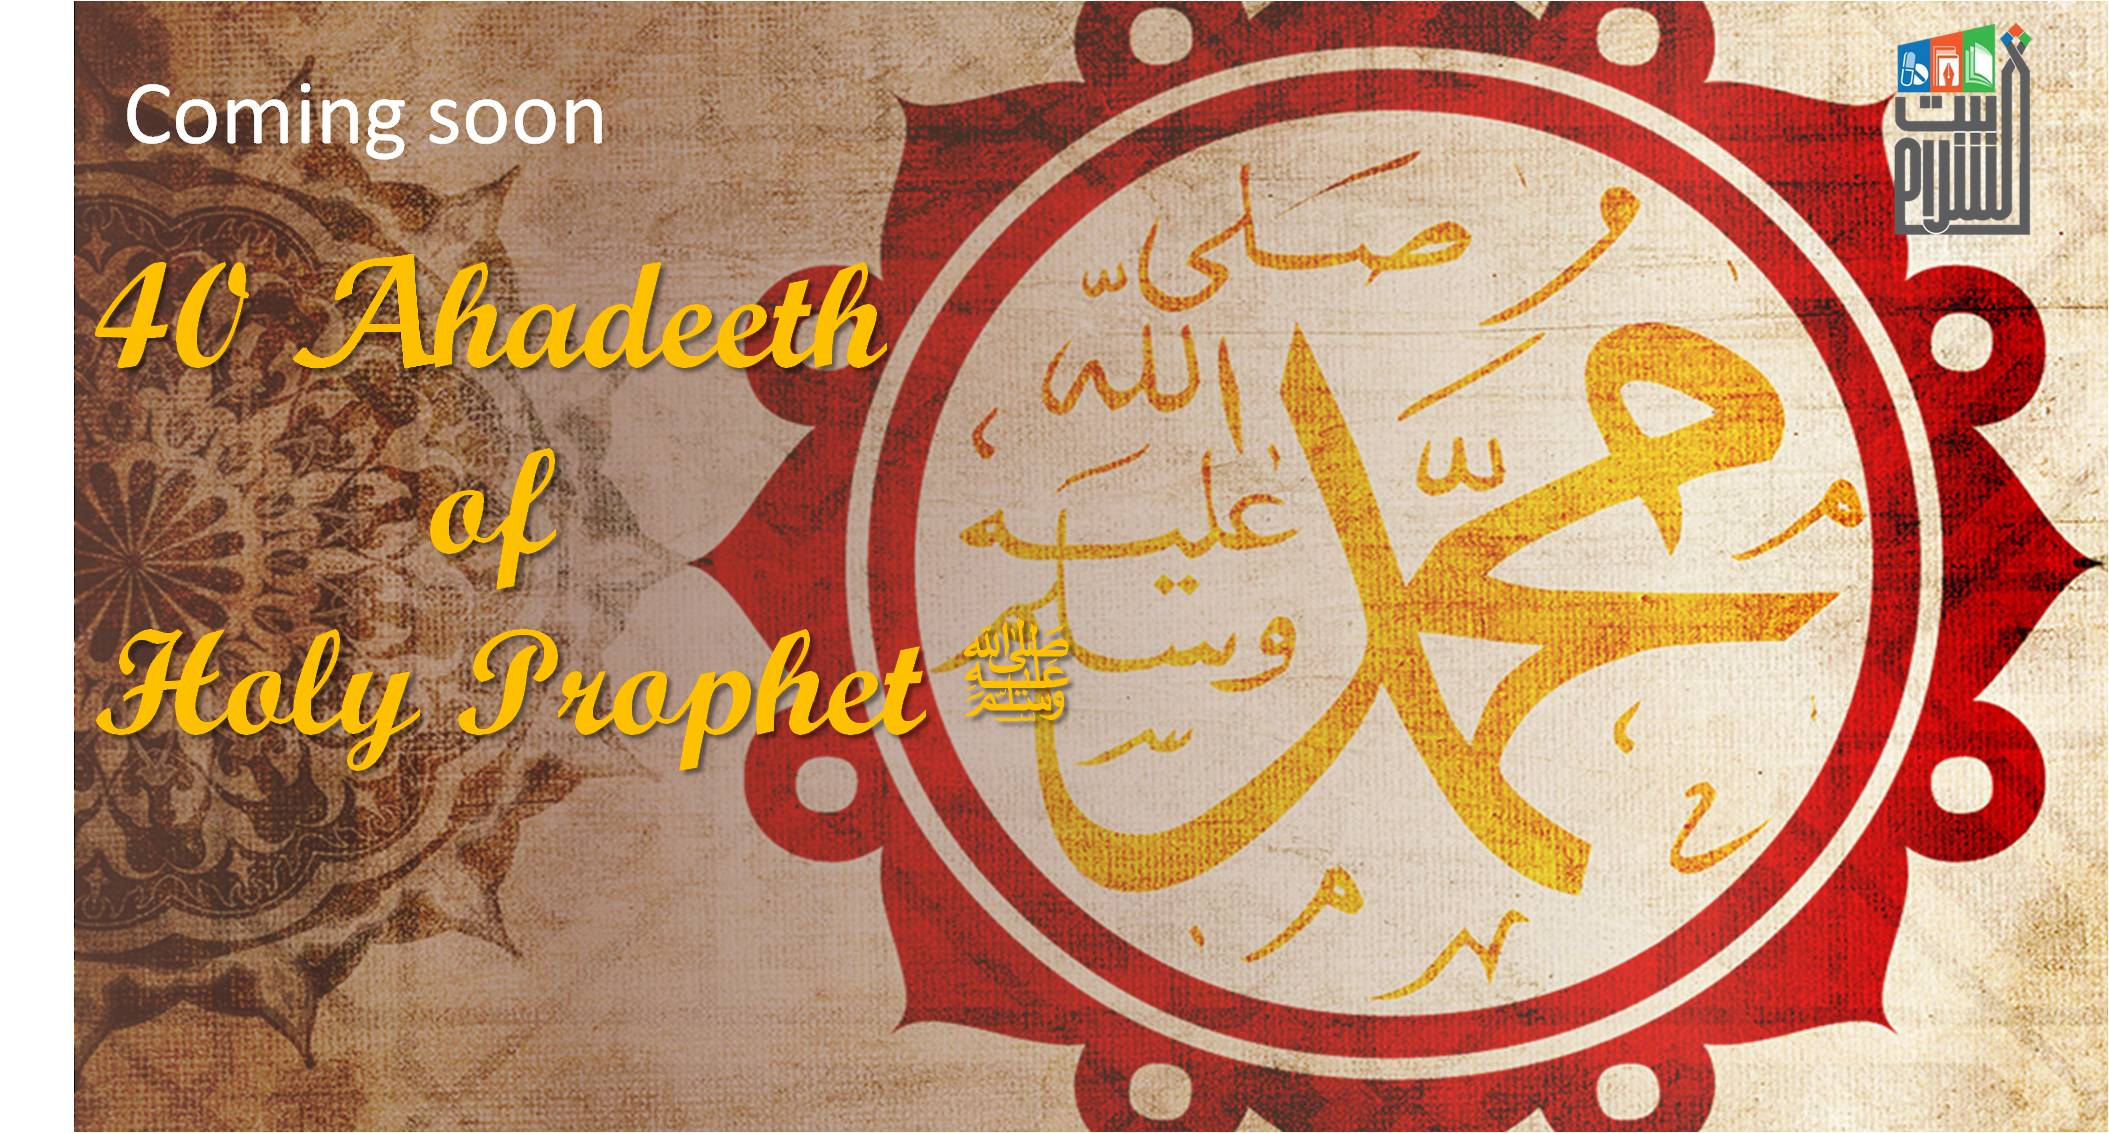 40 Hadees of Holy Prophet (S.A.W)